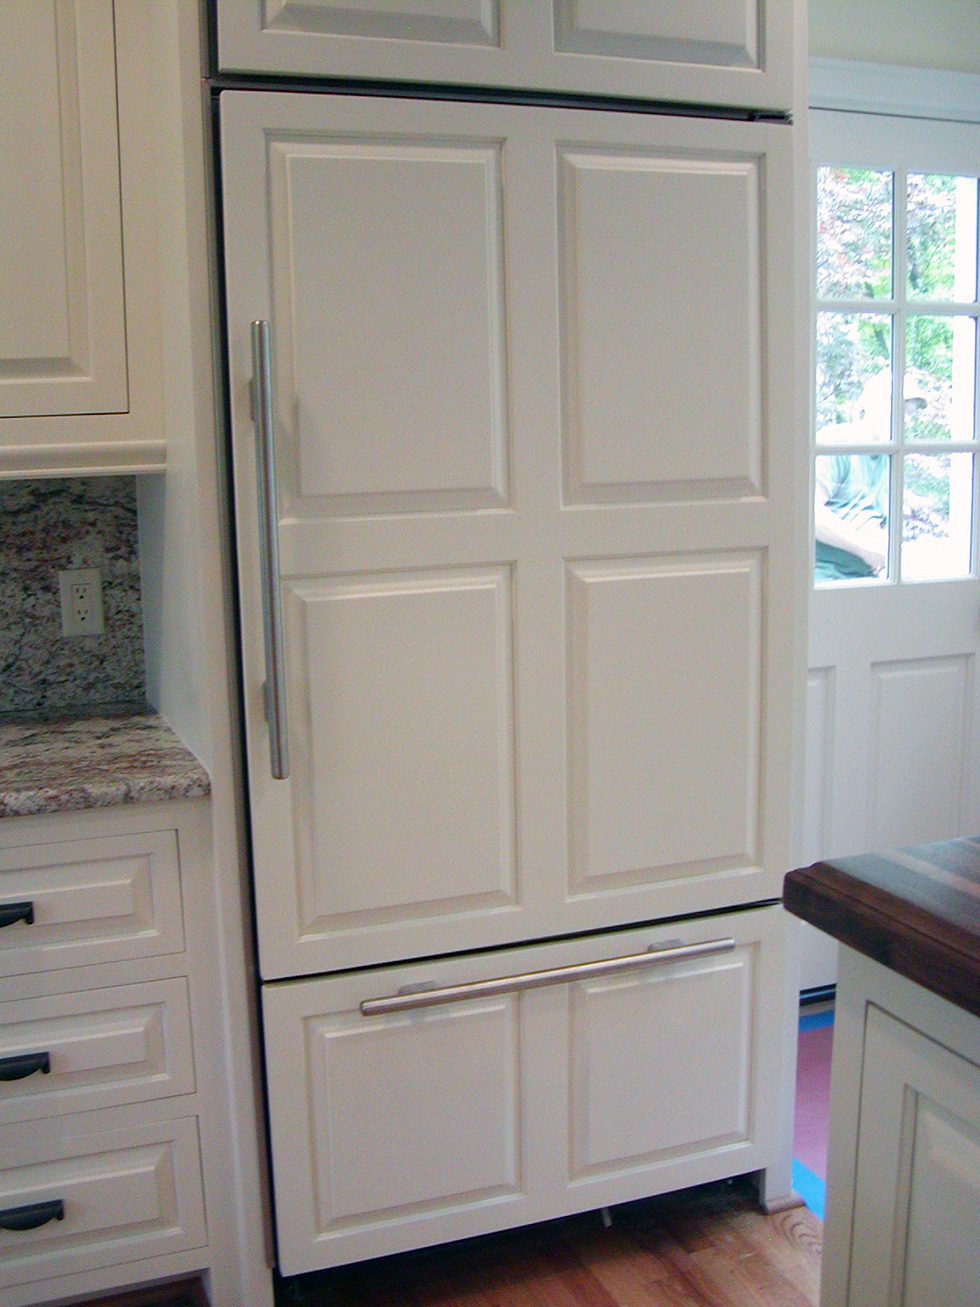 White Kitchen Appliances With Wood Cabinets why white kitchens stand the test of time | houselogic kitchen tips